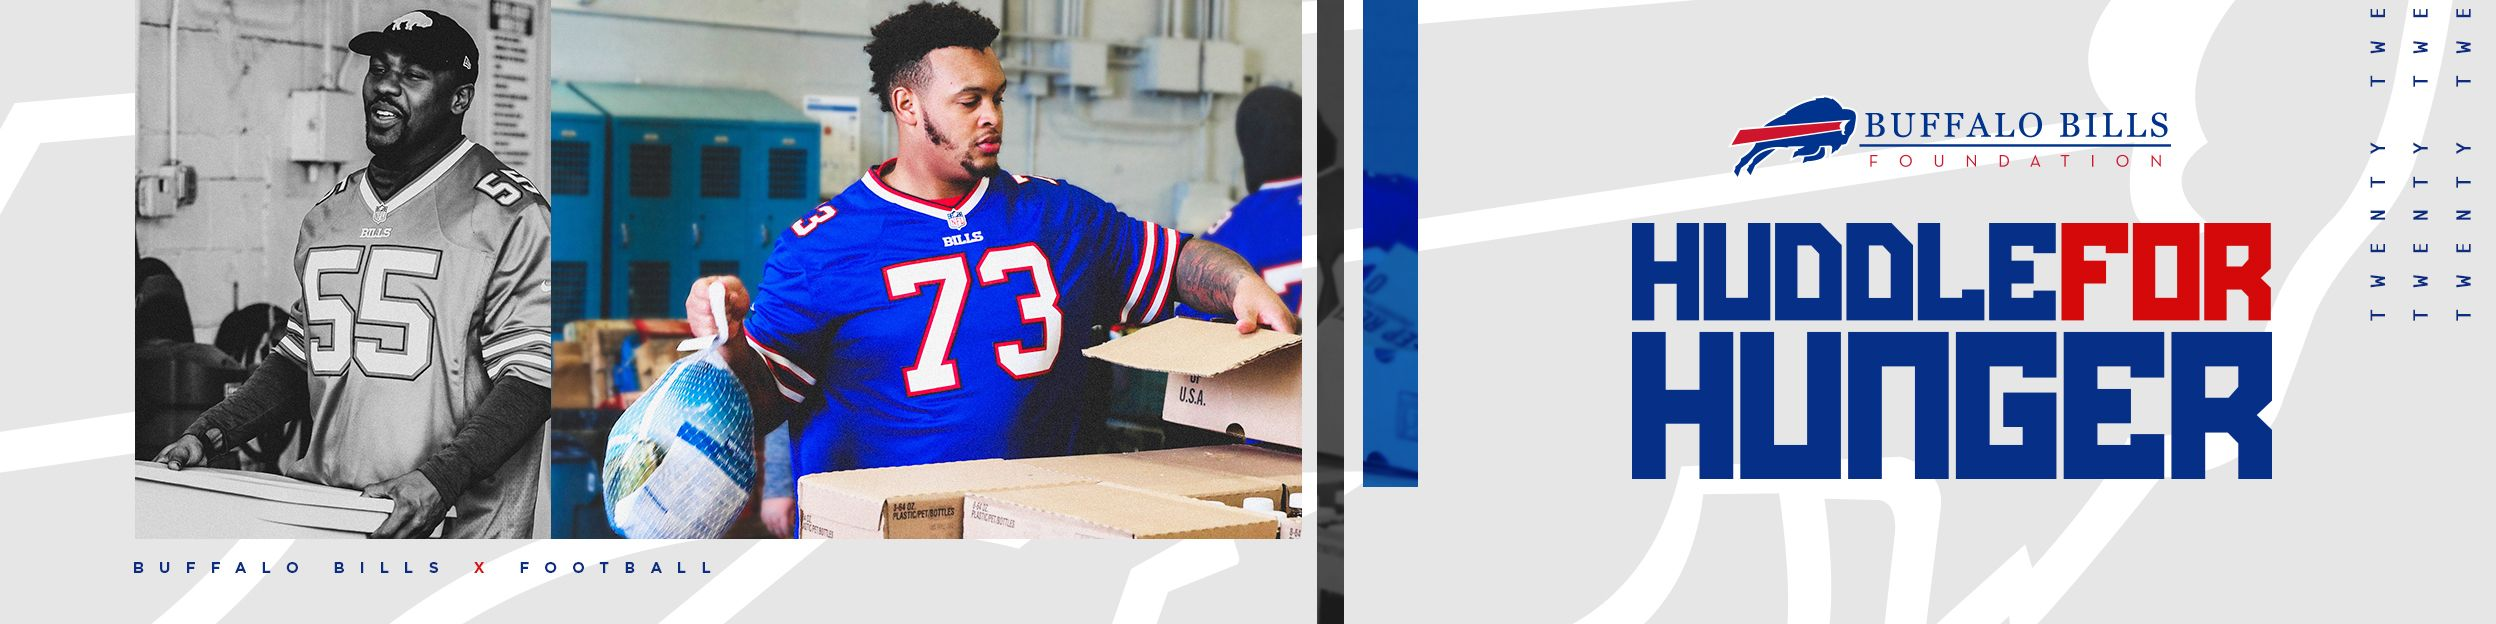 BBCR-04987_-_Huddle_for_Hunger_-_Web_Banners_Bills_Foundation_2496X624